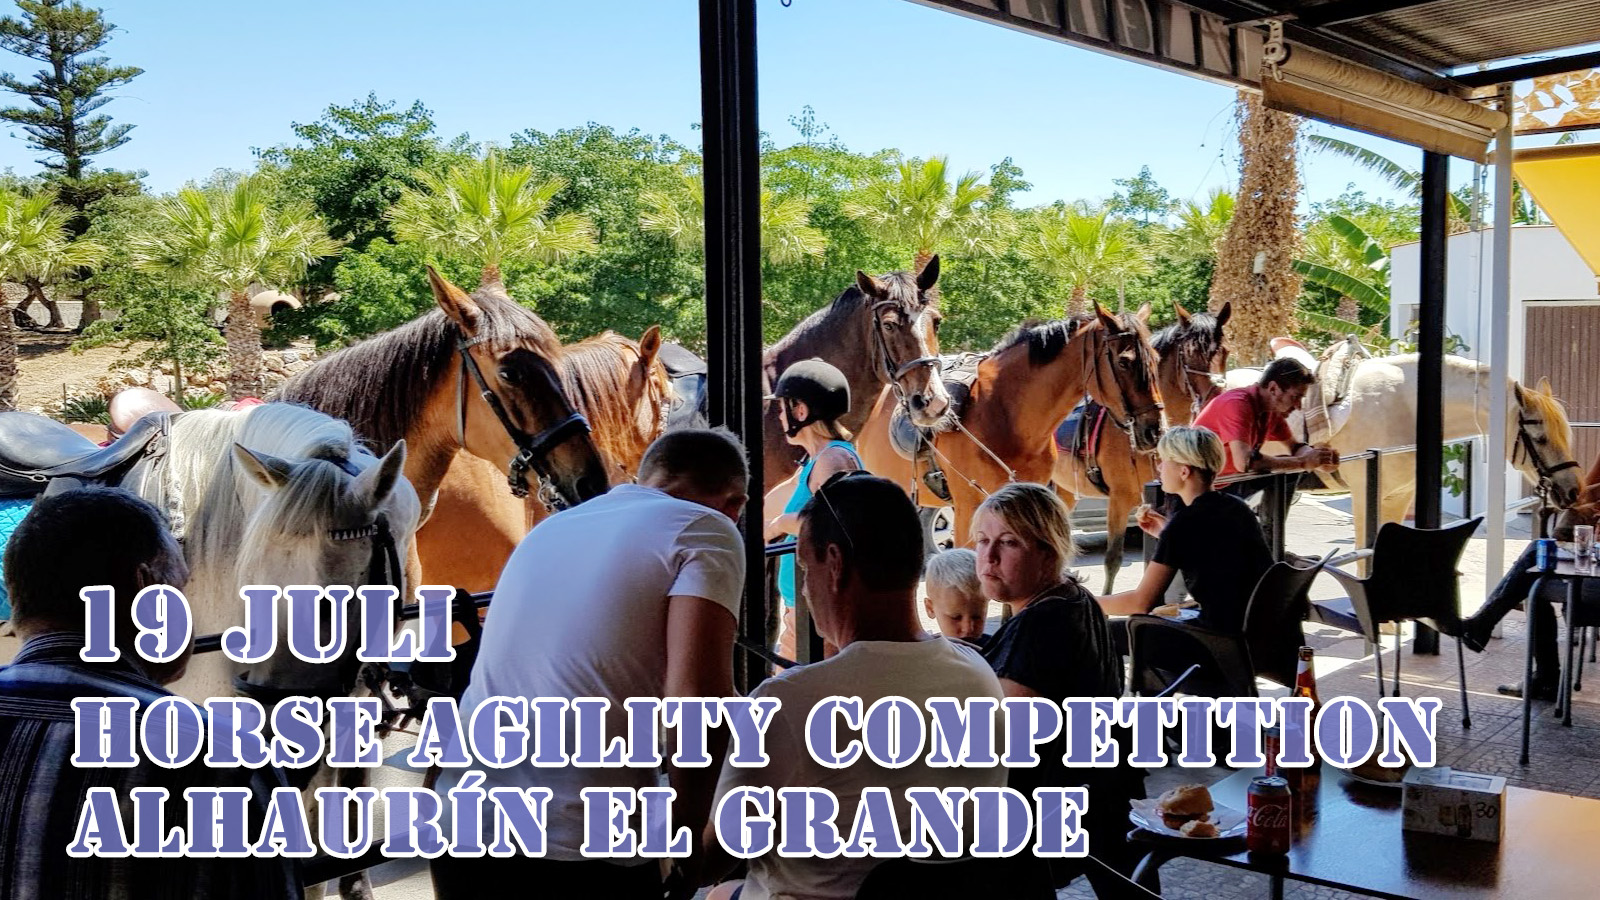 horse-agility-competition